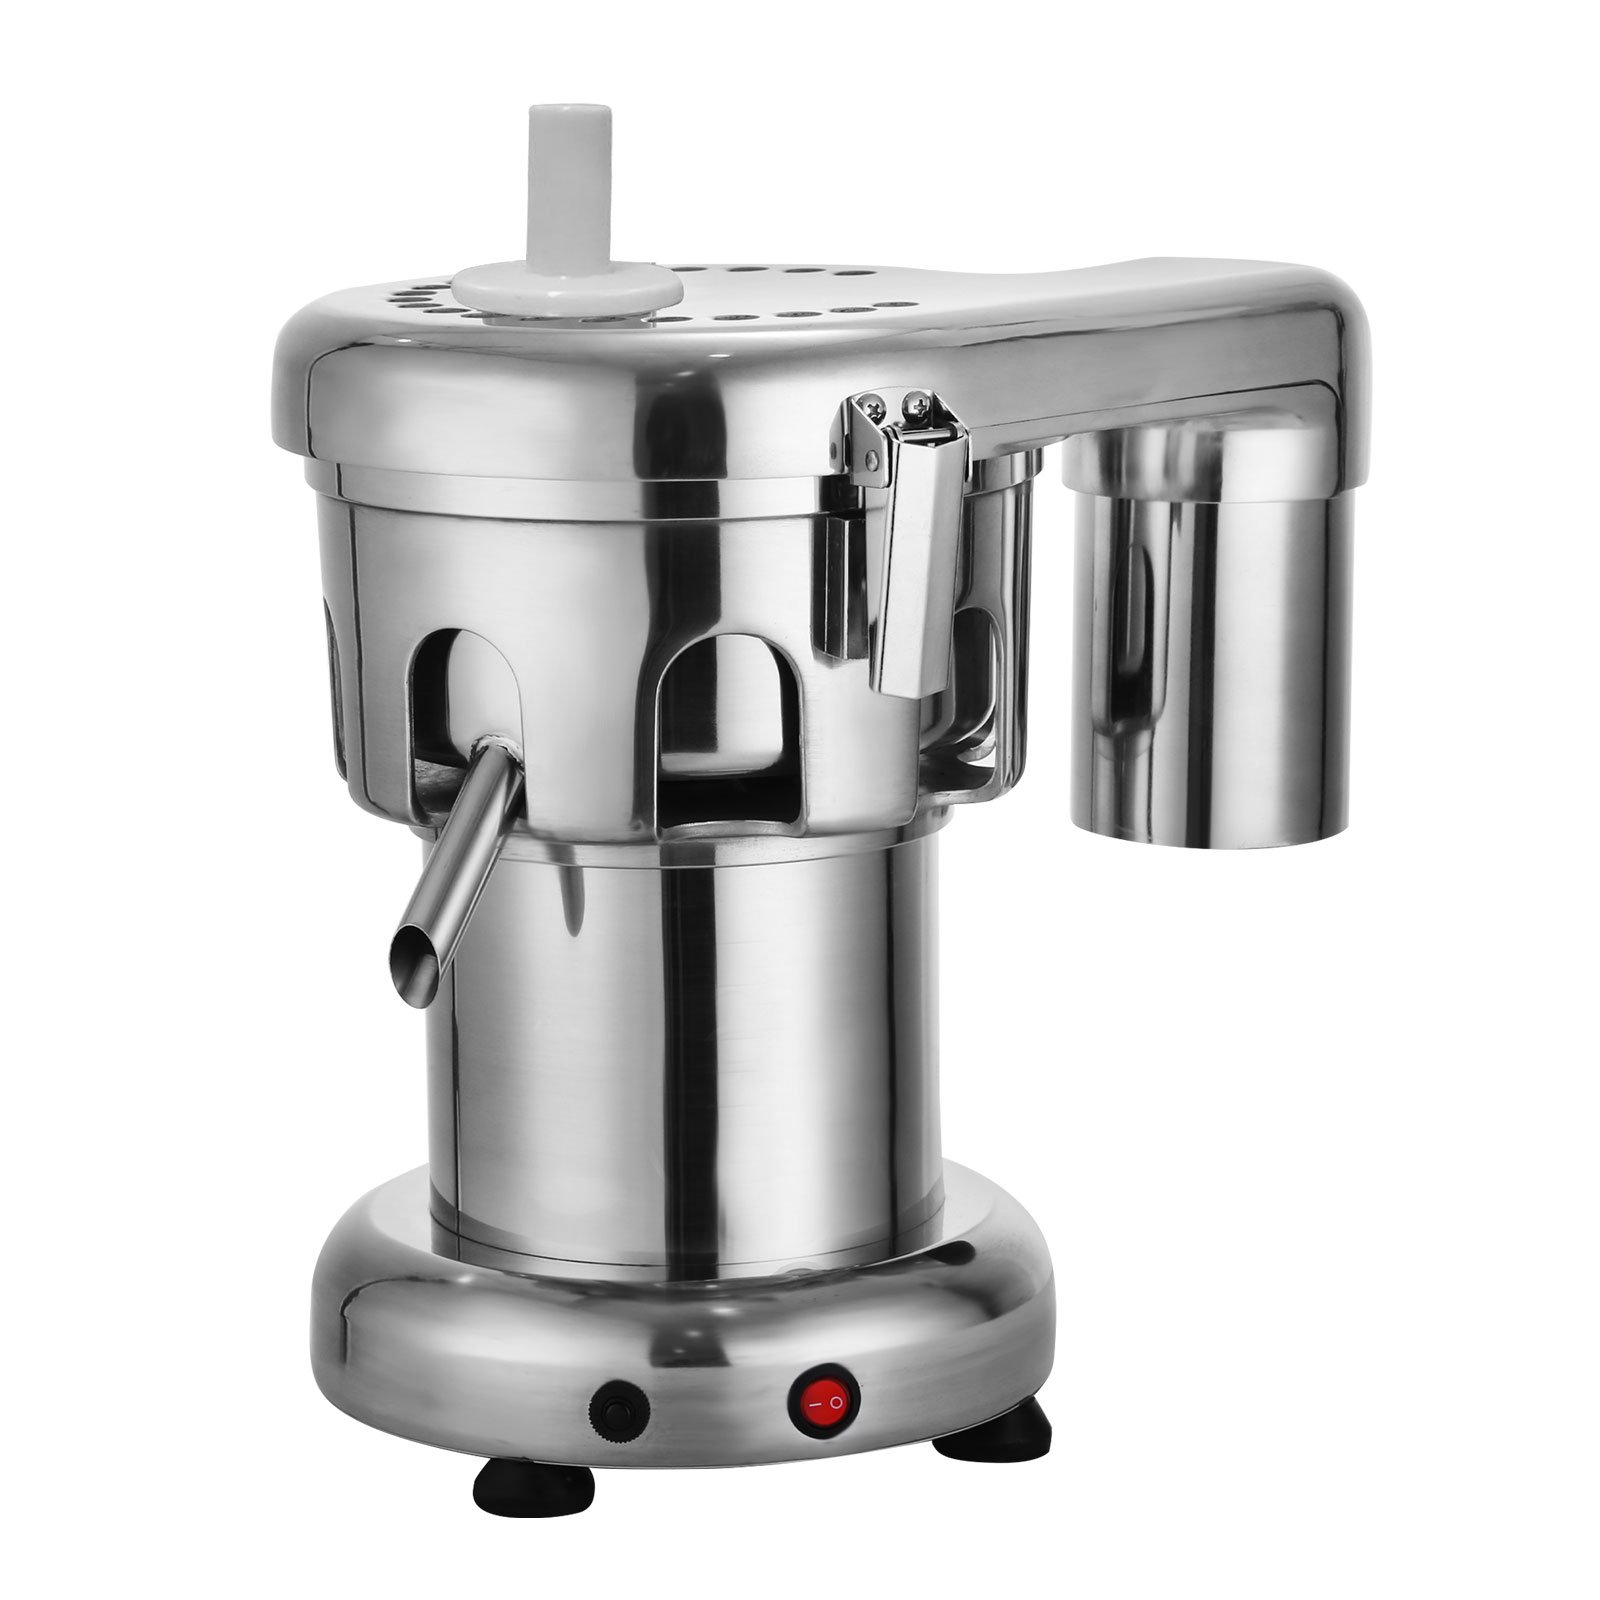 OrangeA 550W Commercial Juice Extractor Heavy Duty Commercial Juicer Aluminum Casting and Stainless Steel Constructed Centrifugal Juice Extractor Juicing both Fruit and Vegetable (WF-A2000)